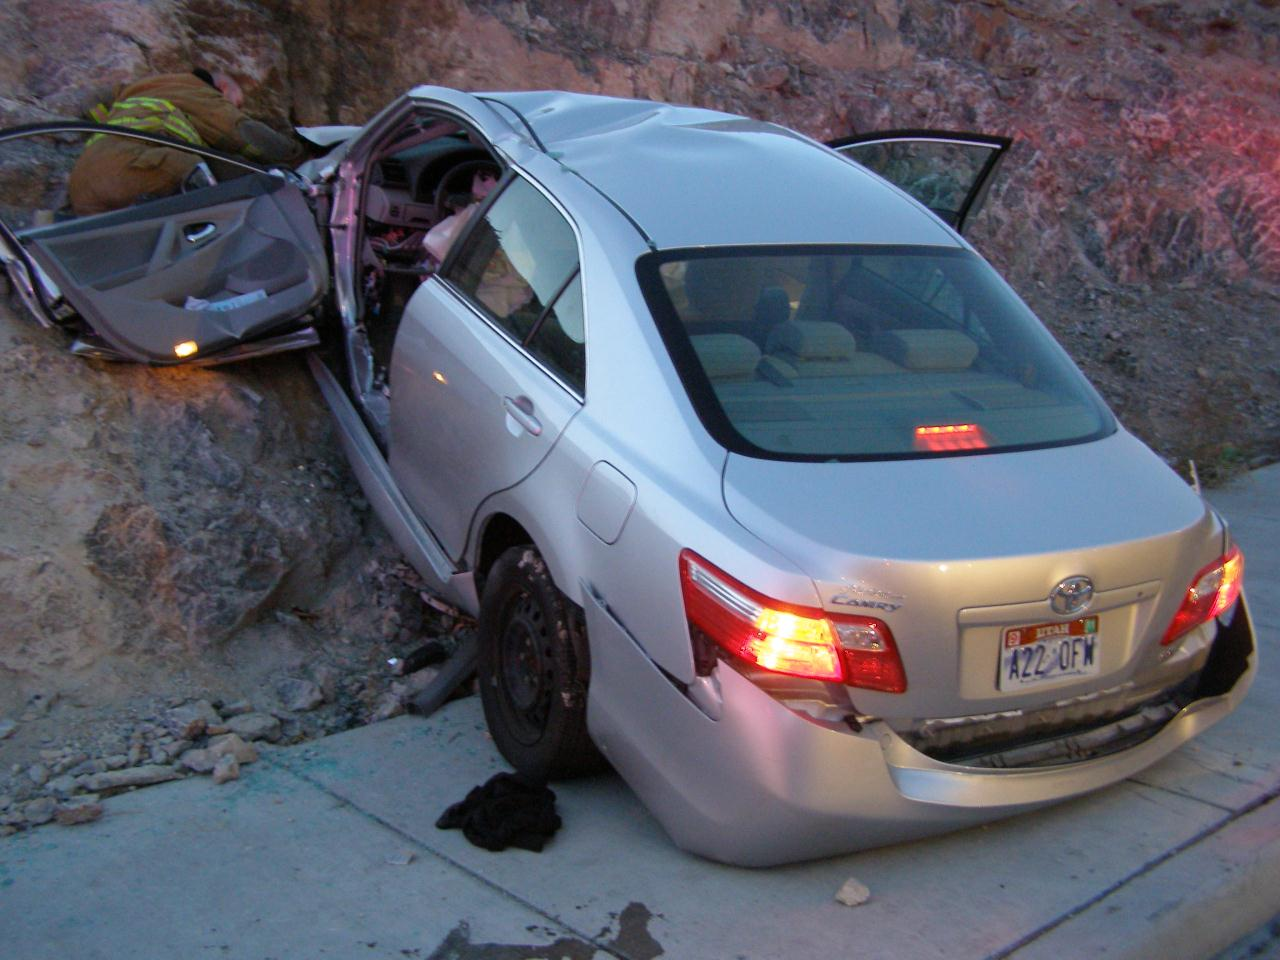 Motorcycle Style Trending Toyota Camry Crash In Utah Is Attention With Bbs Rims Back To Recalls